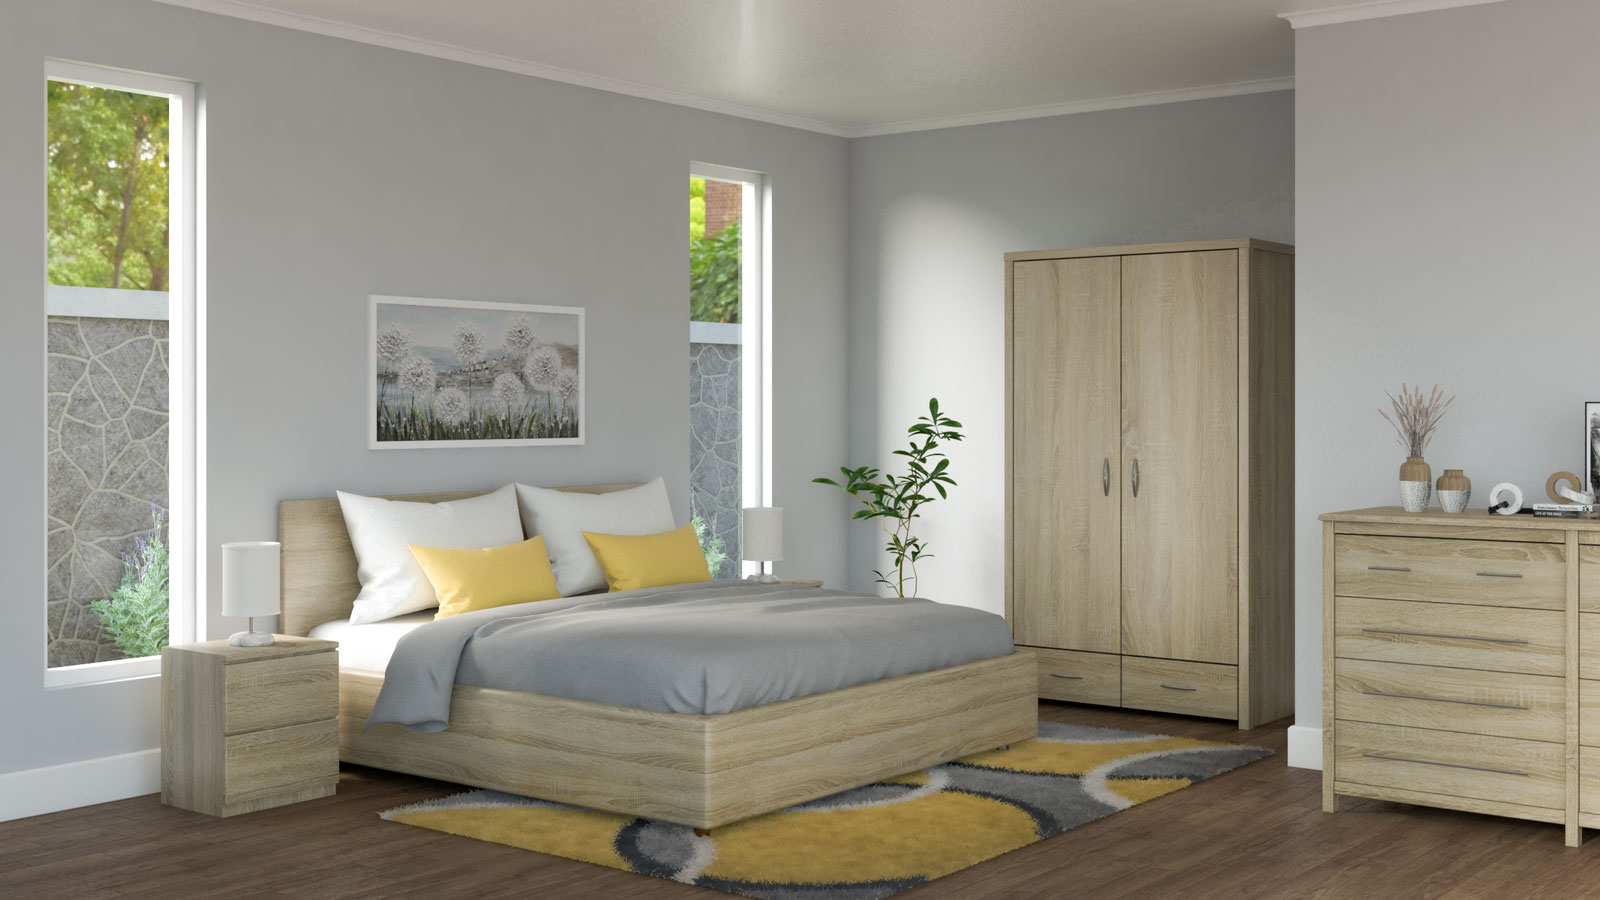 Gray bedding with yellow accents